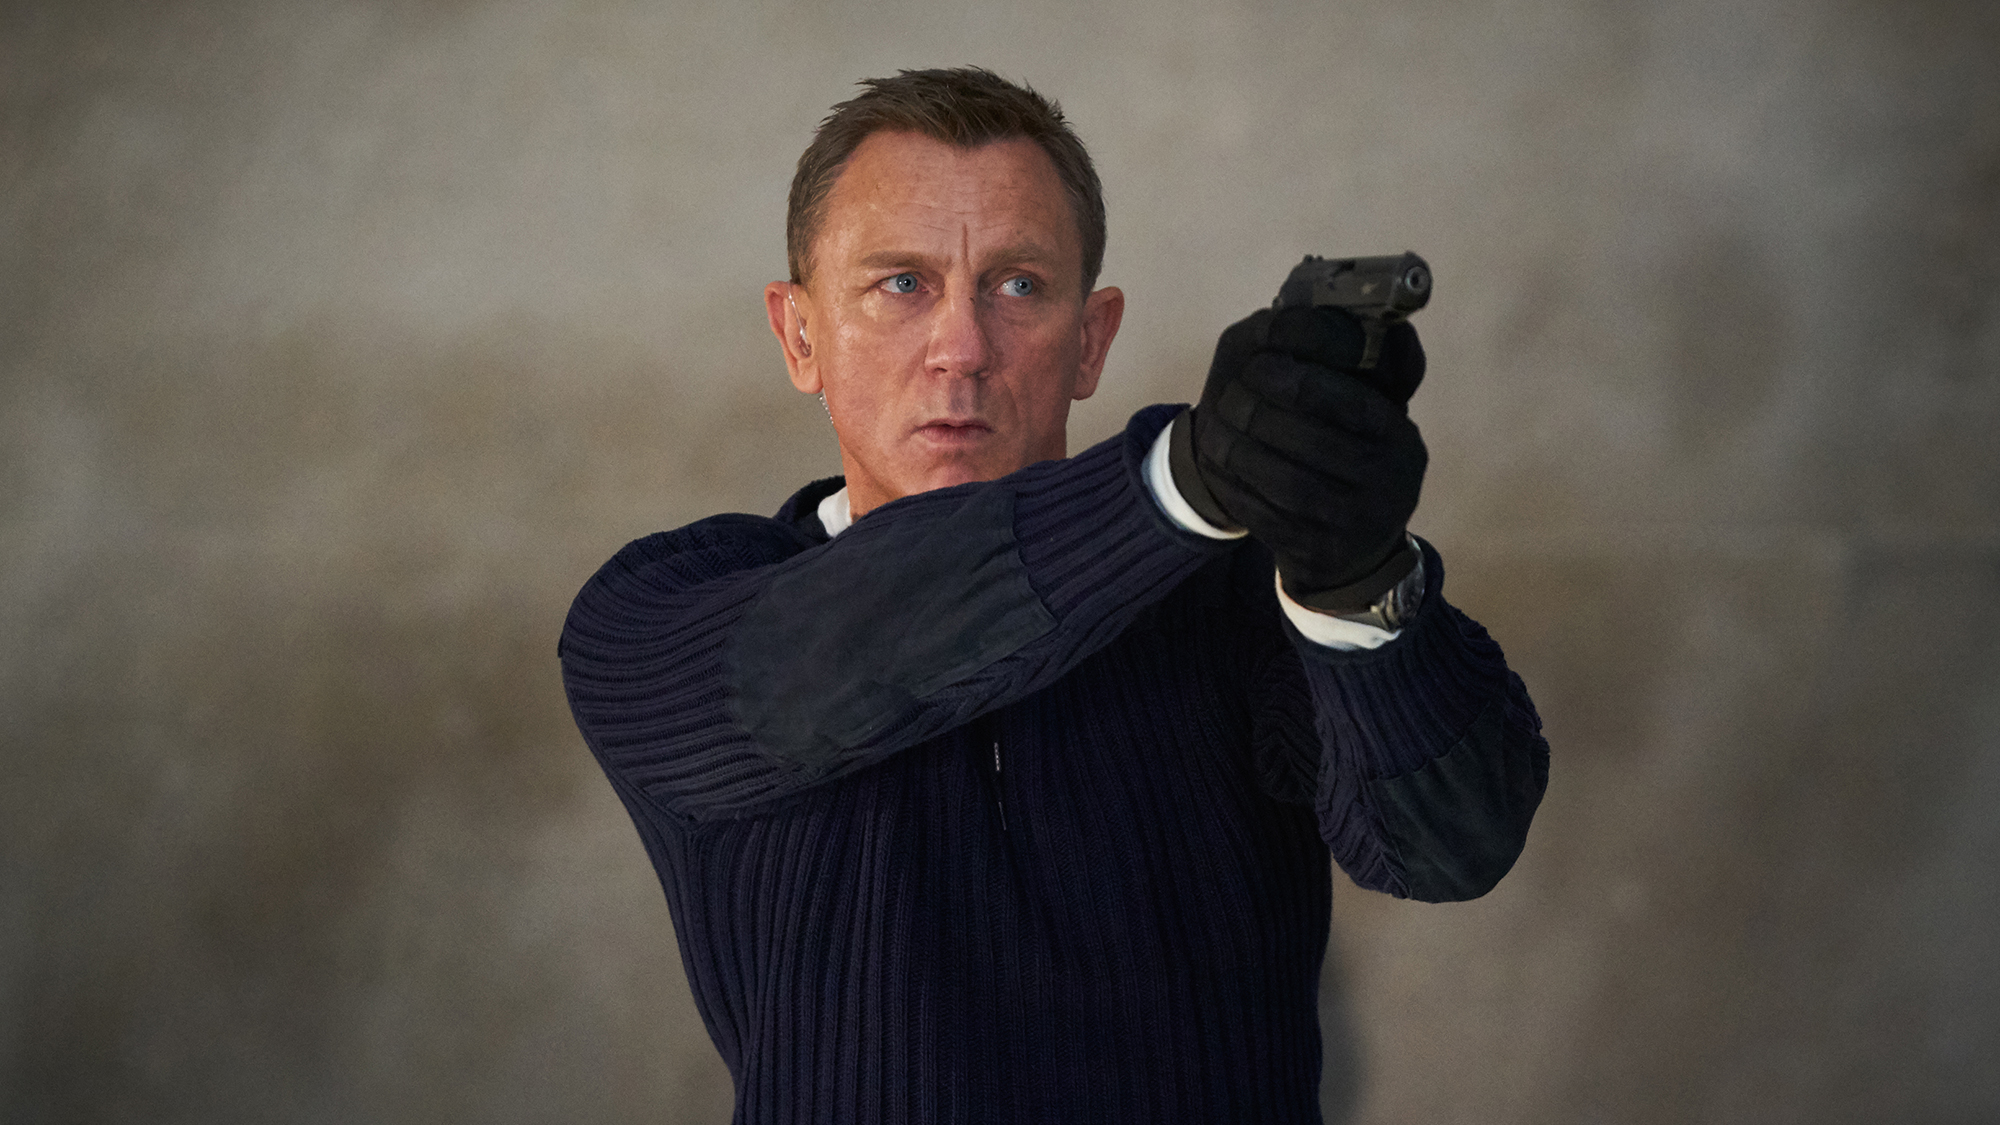 B25_25594_R James Bond (Daniel Craig) prepares to shoot in  NO TIME TO DIE an EON Productions and Metro Goldwyn Mayer Studios film Credit: Nicola Dove © 2020 DANJAQ, LLC AND MGM.  ALL RIGHTS RESERVED.